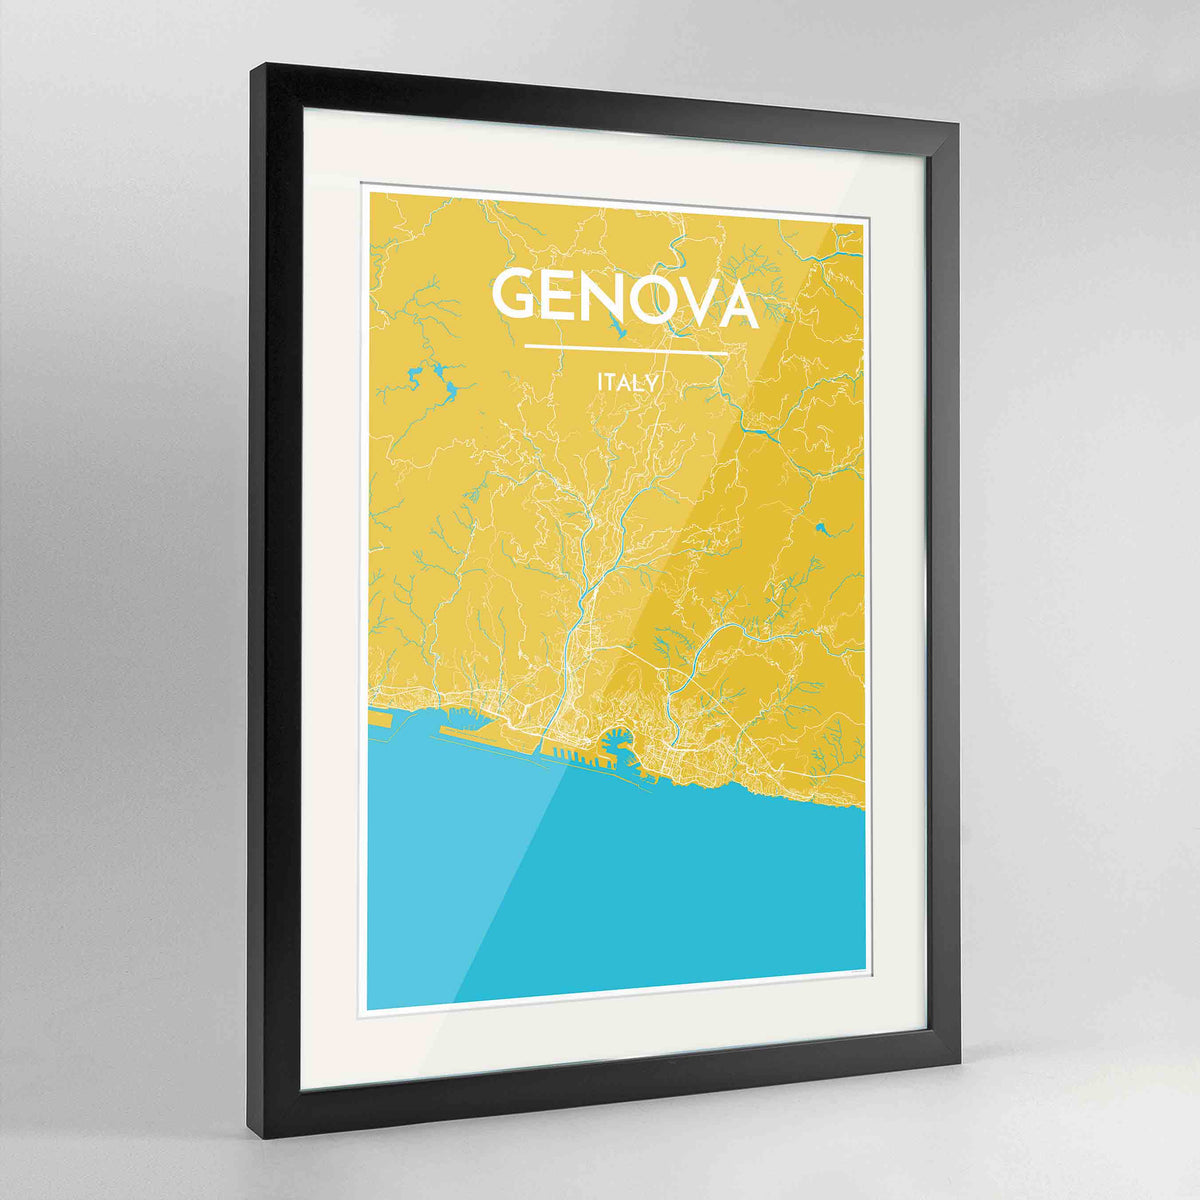 "Framed Genova Map Art Print 24x36"" Contemporary Black frame Point Two Design Group"